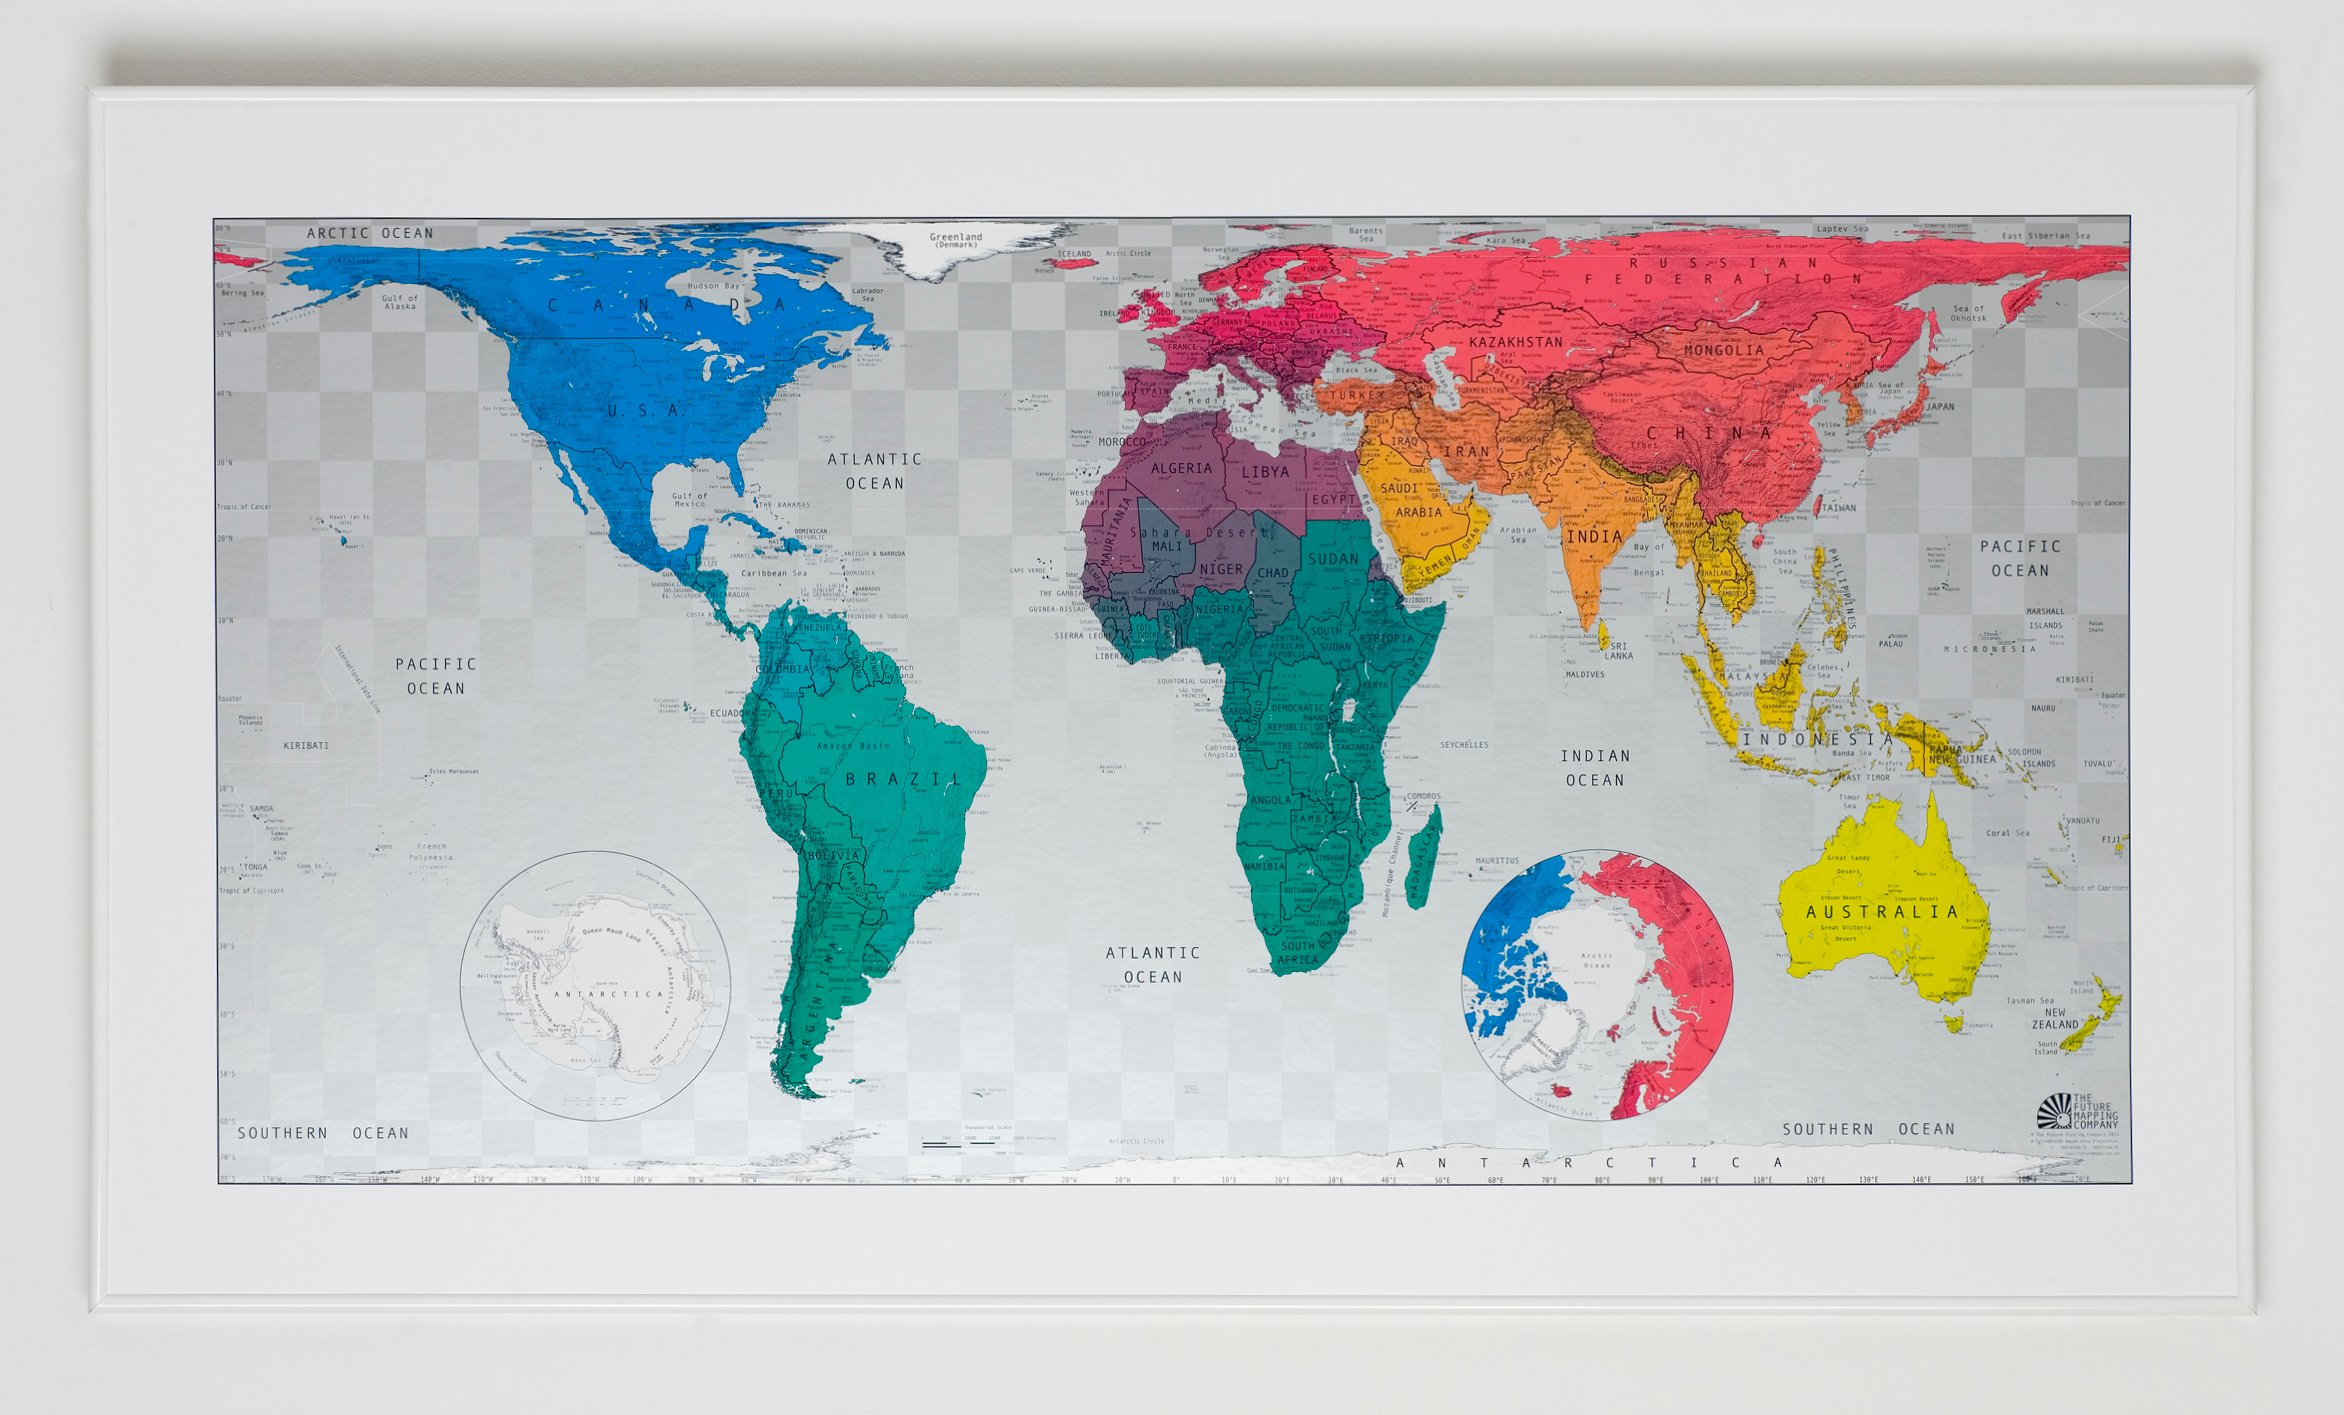 Magnetic world maps afp cv world magnetic map poli classic black wood frame 46x33in34500 gumiabroncs Gallery